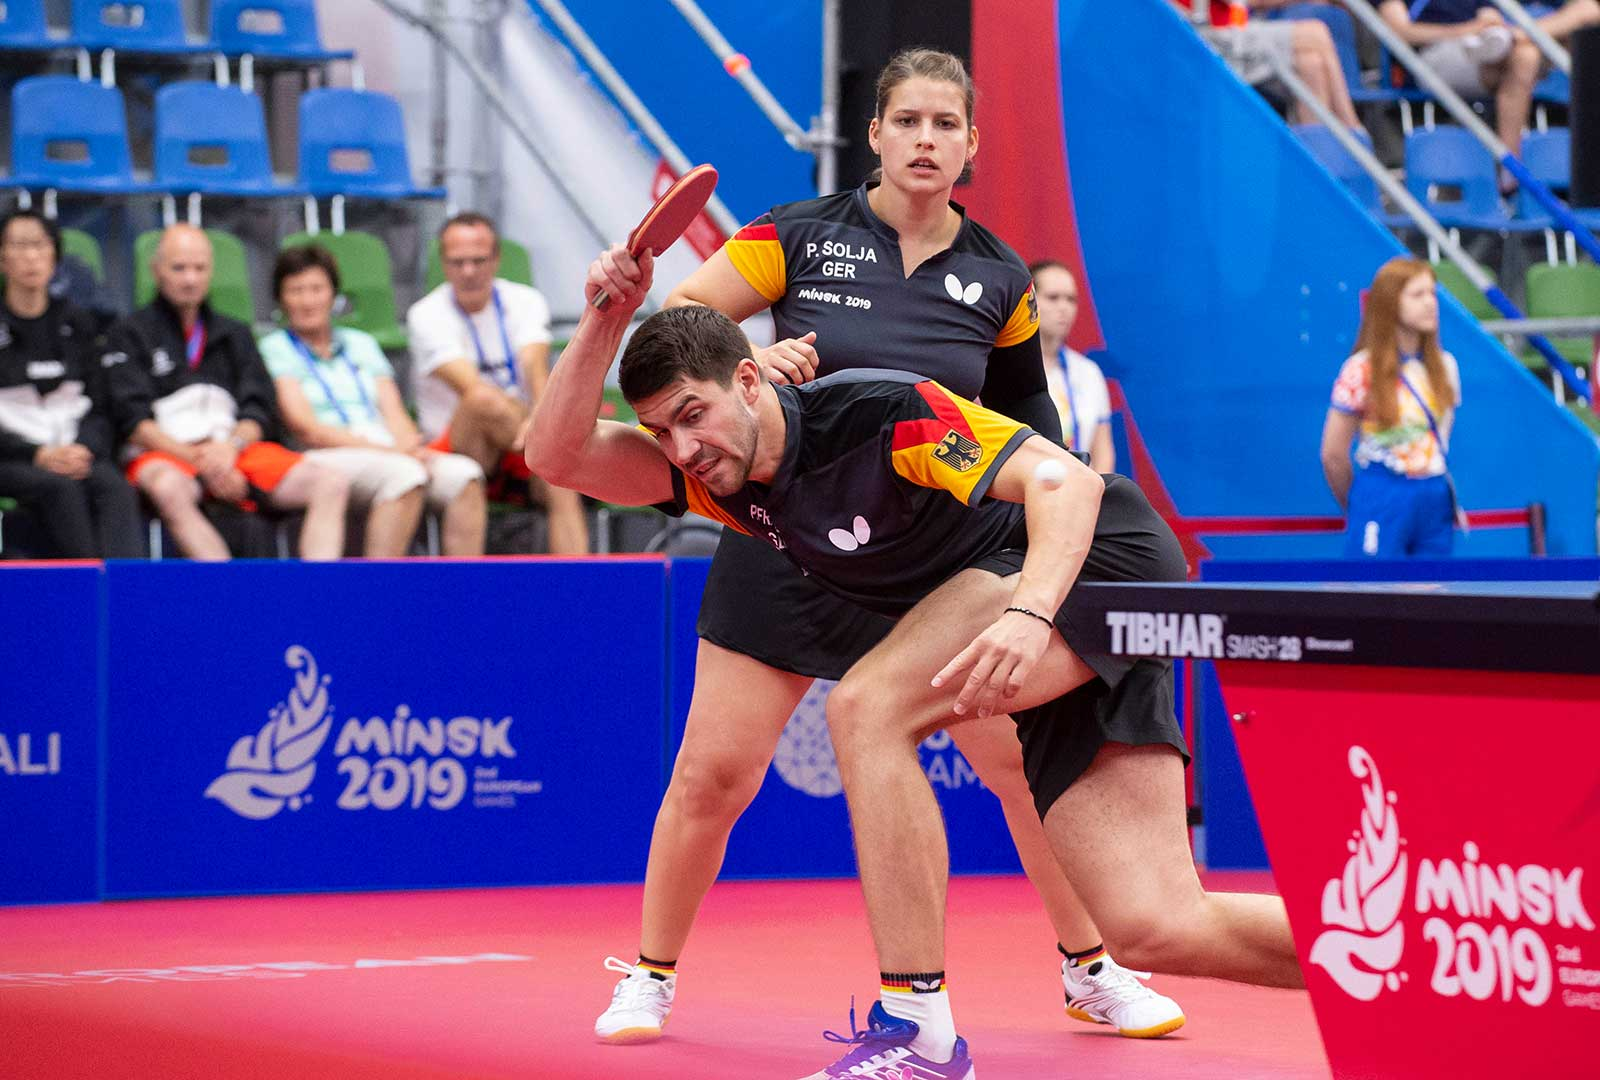 Mixed European Games 2019 in Minsk - Foto Manfred Schillings